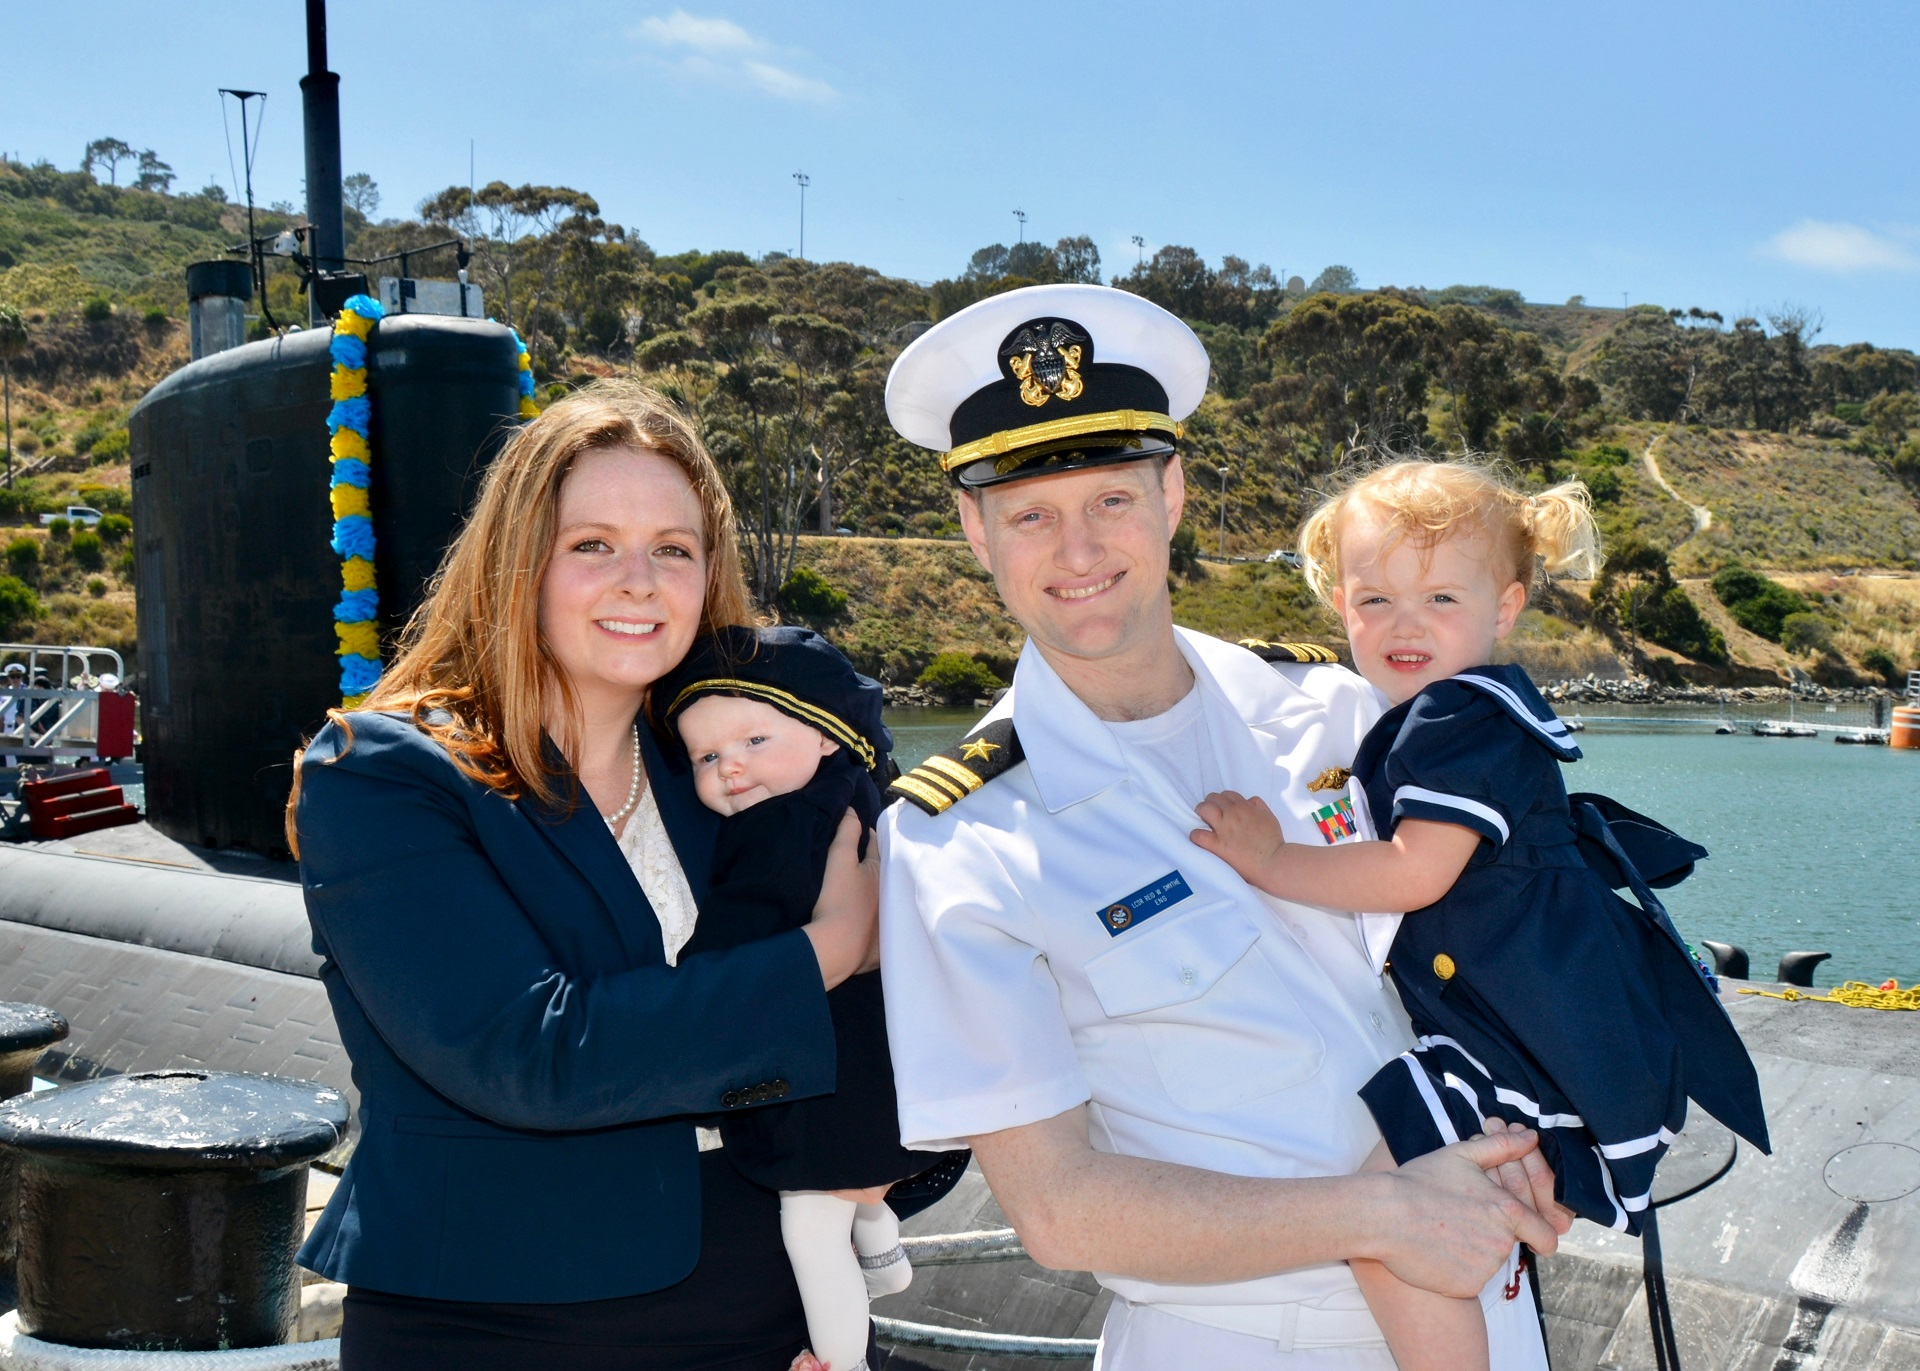 Courtney and LCDR Smythe